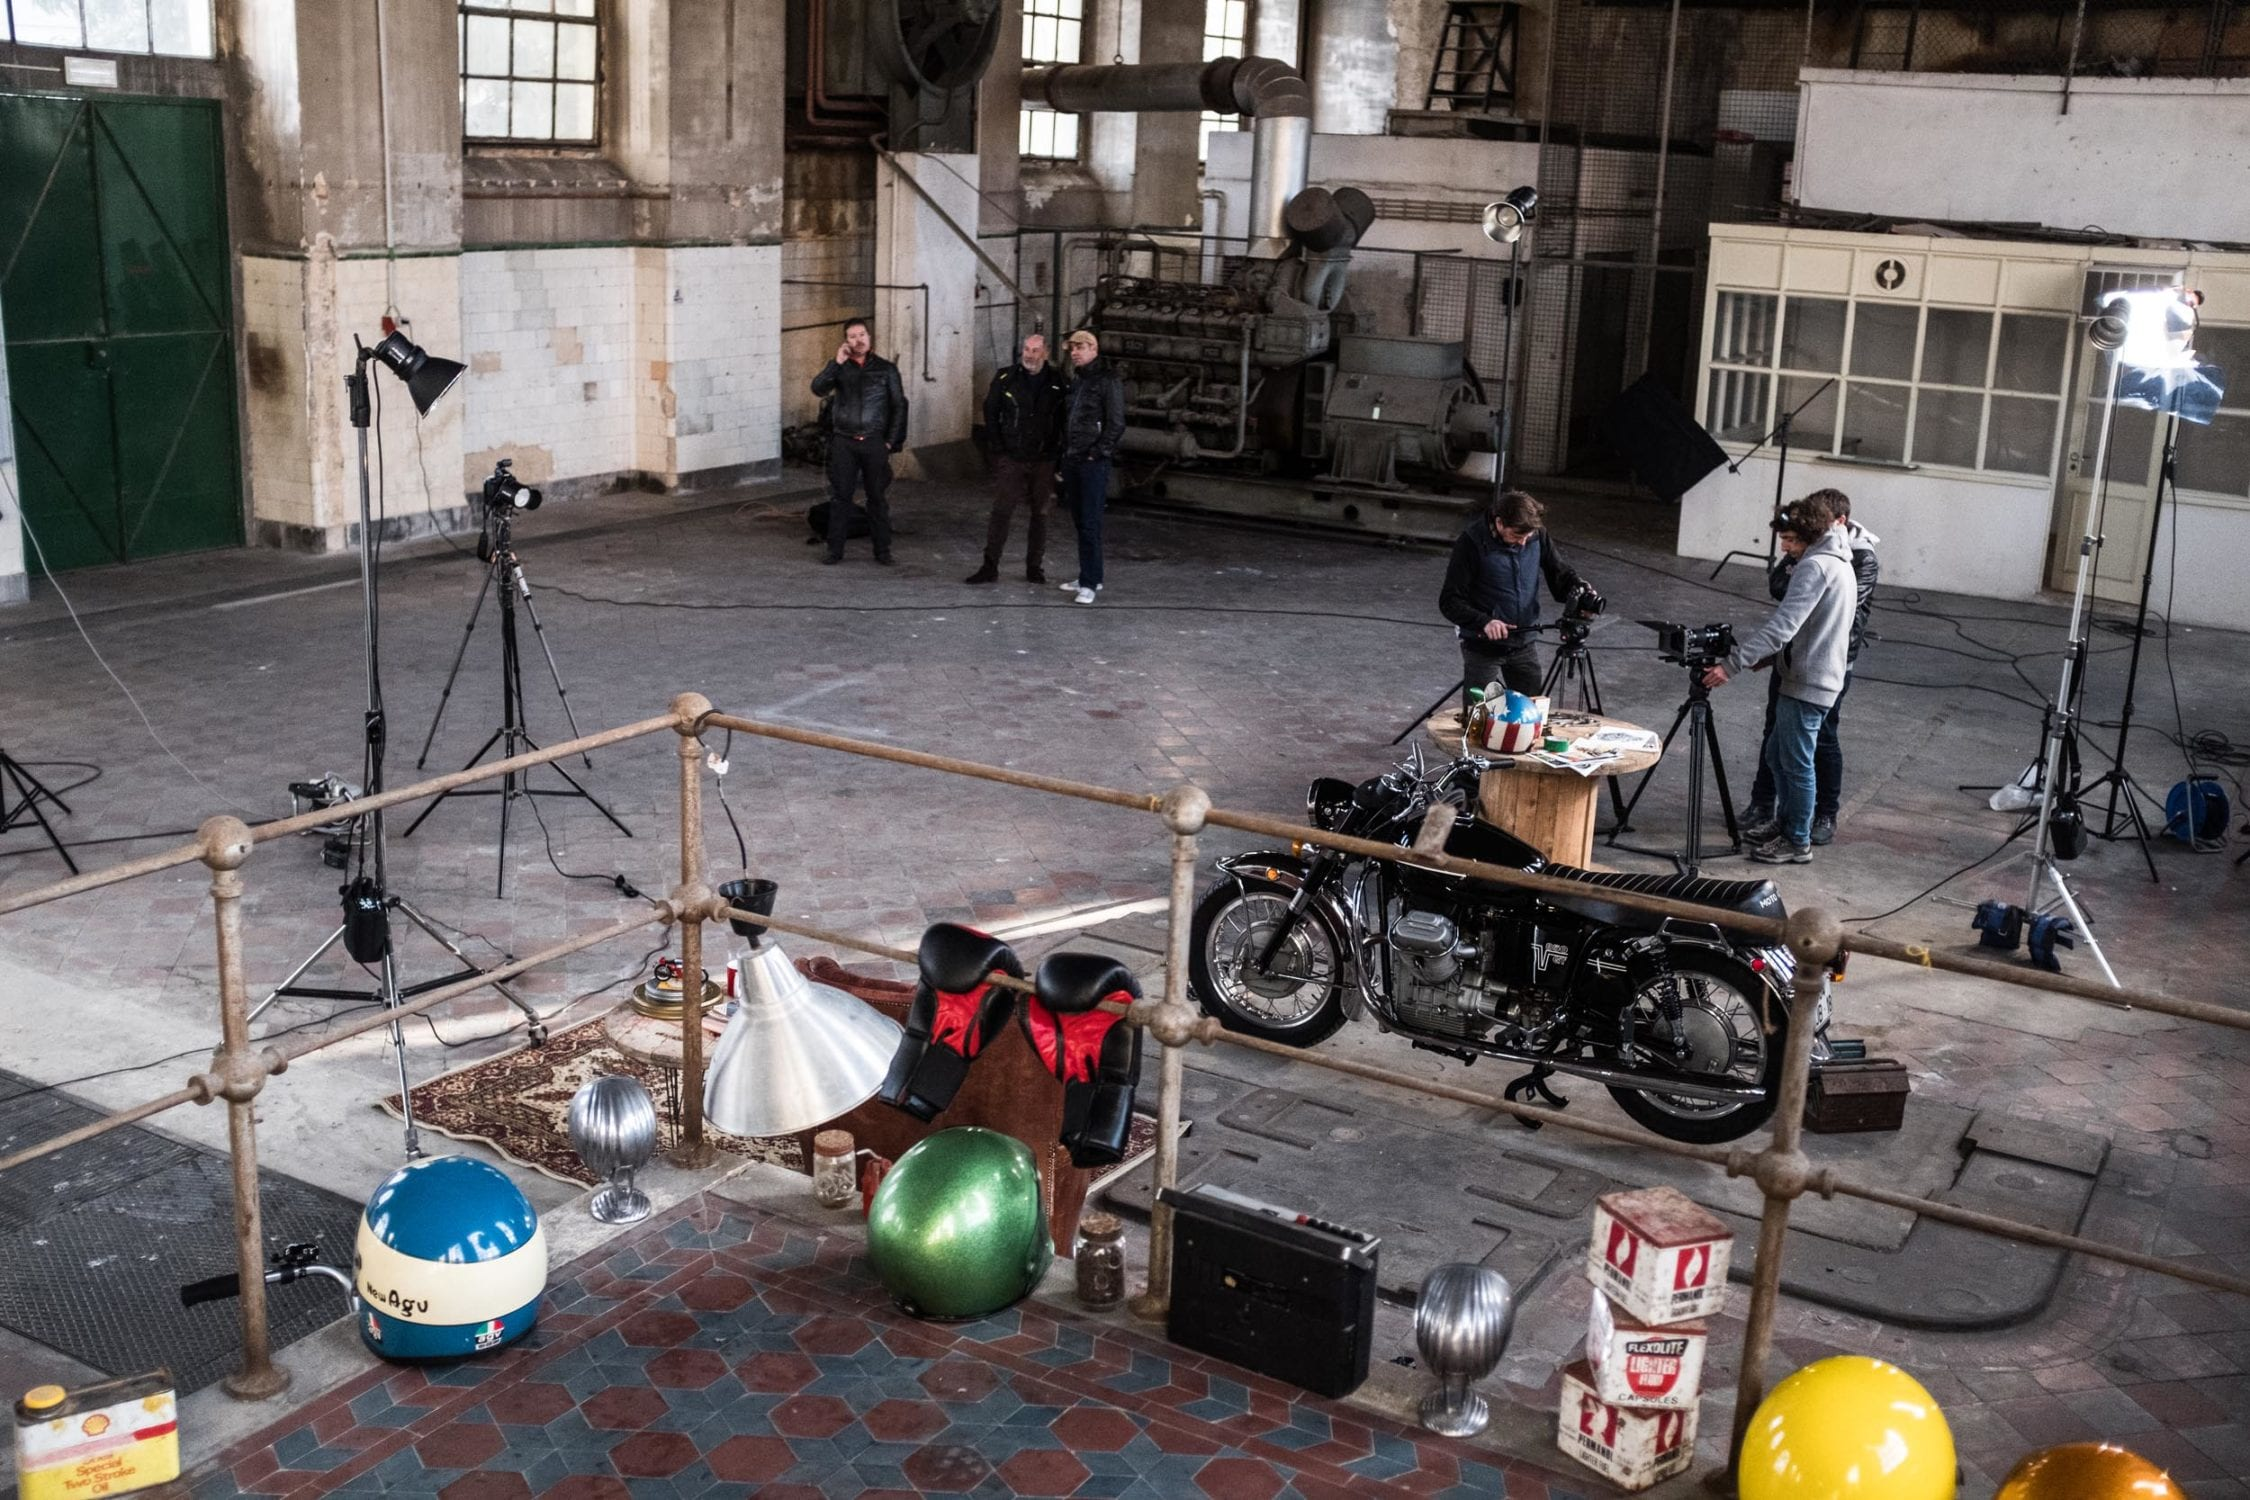 On Set With The Fujifilm X H1 And Vintage Motorcycles Part